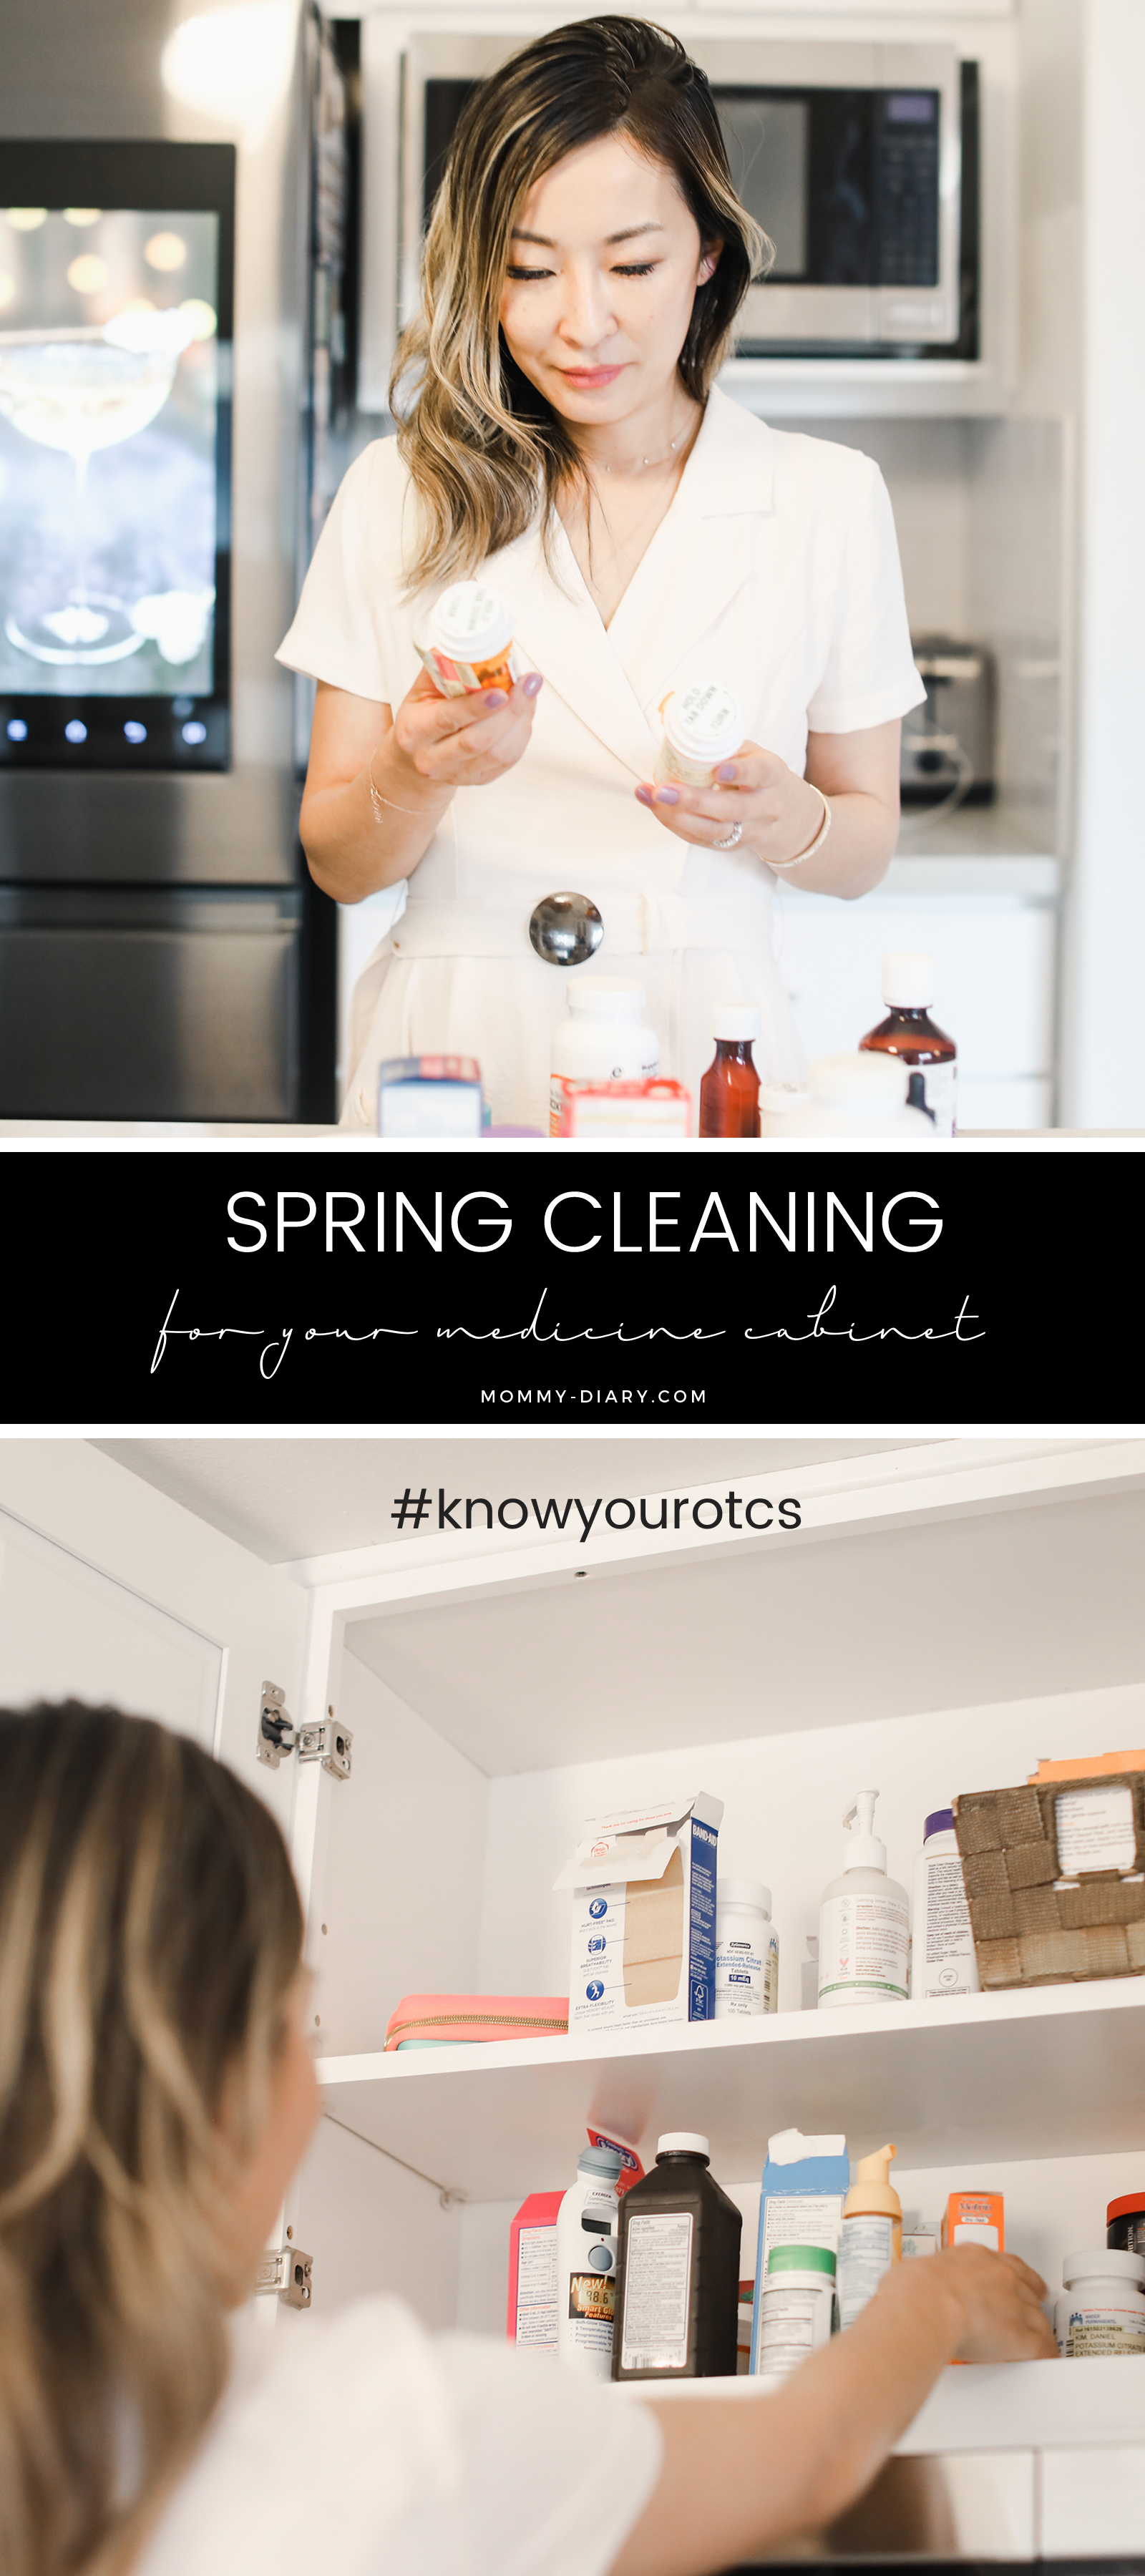 spring-cleaning-know-your-otcs-pinterest